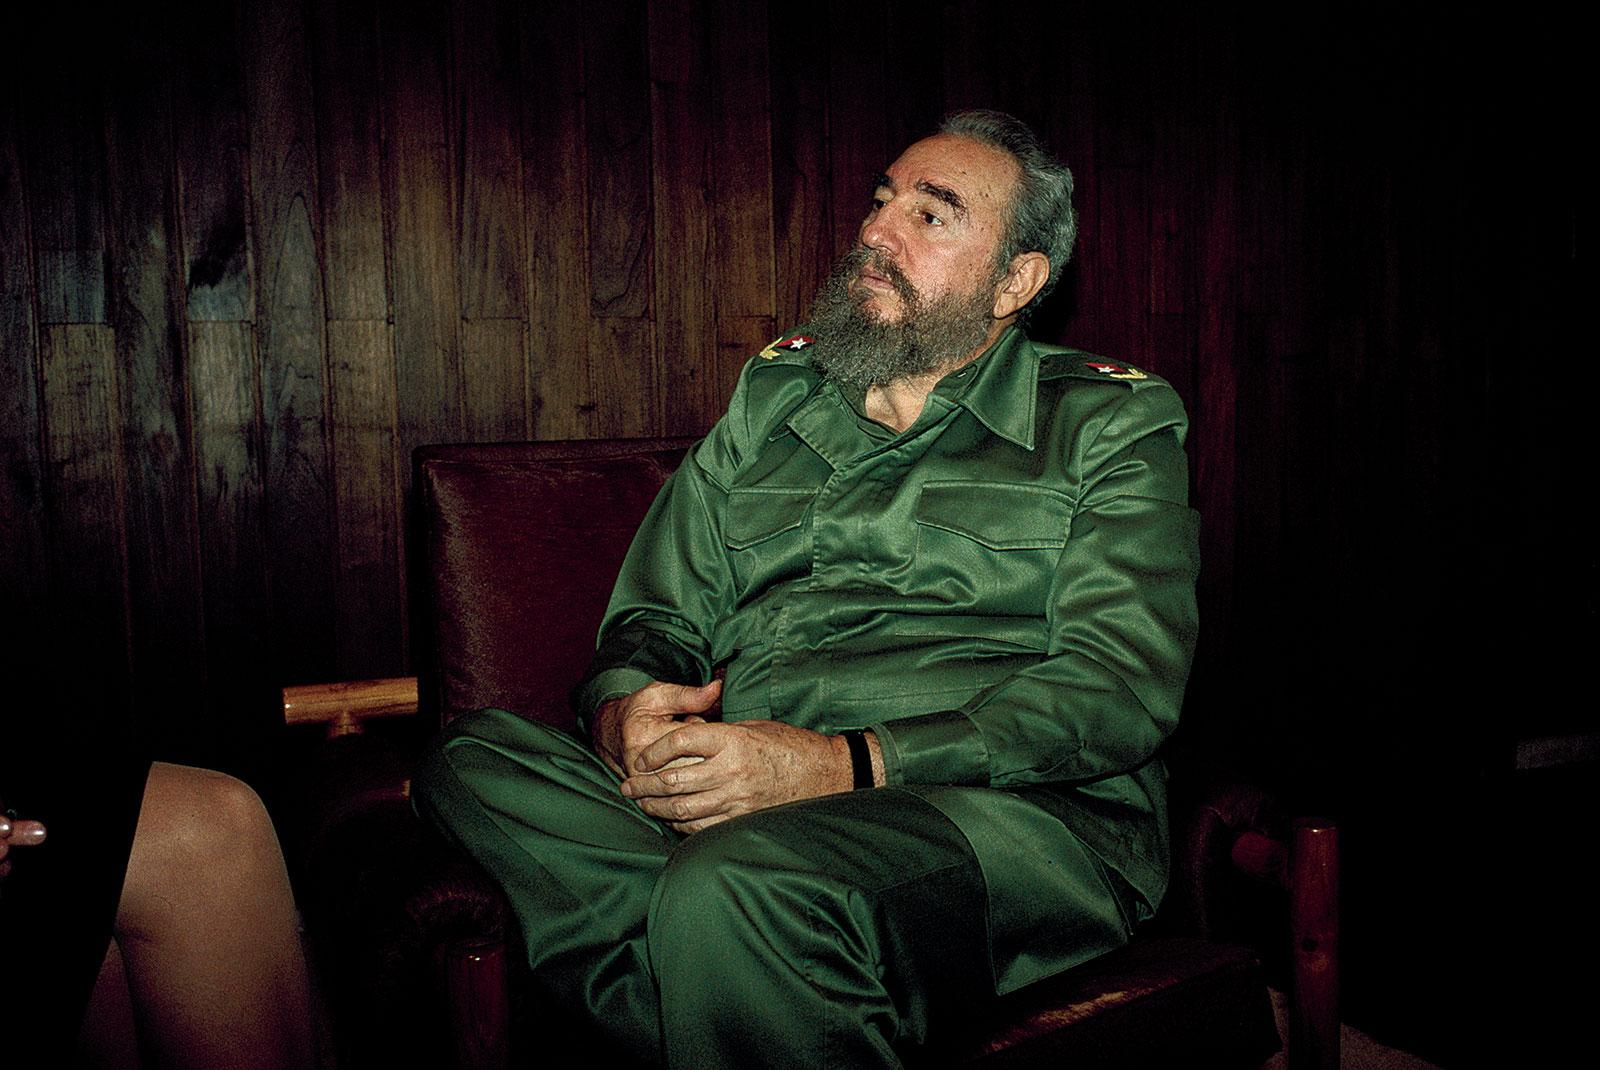 A Conversation With Fidel